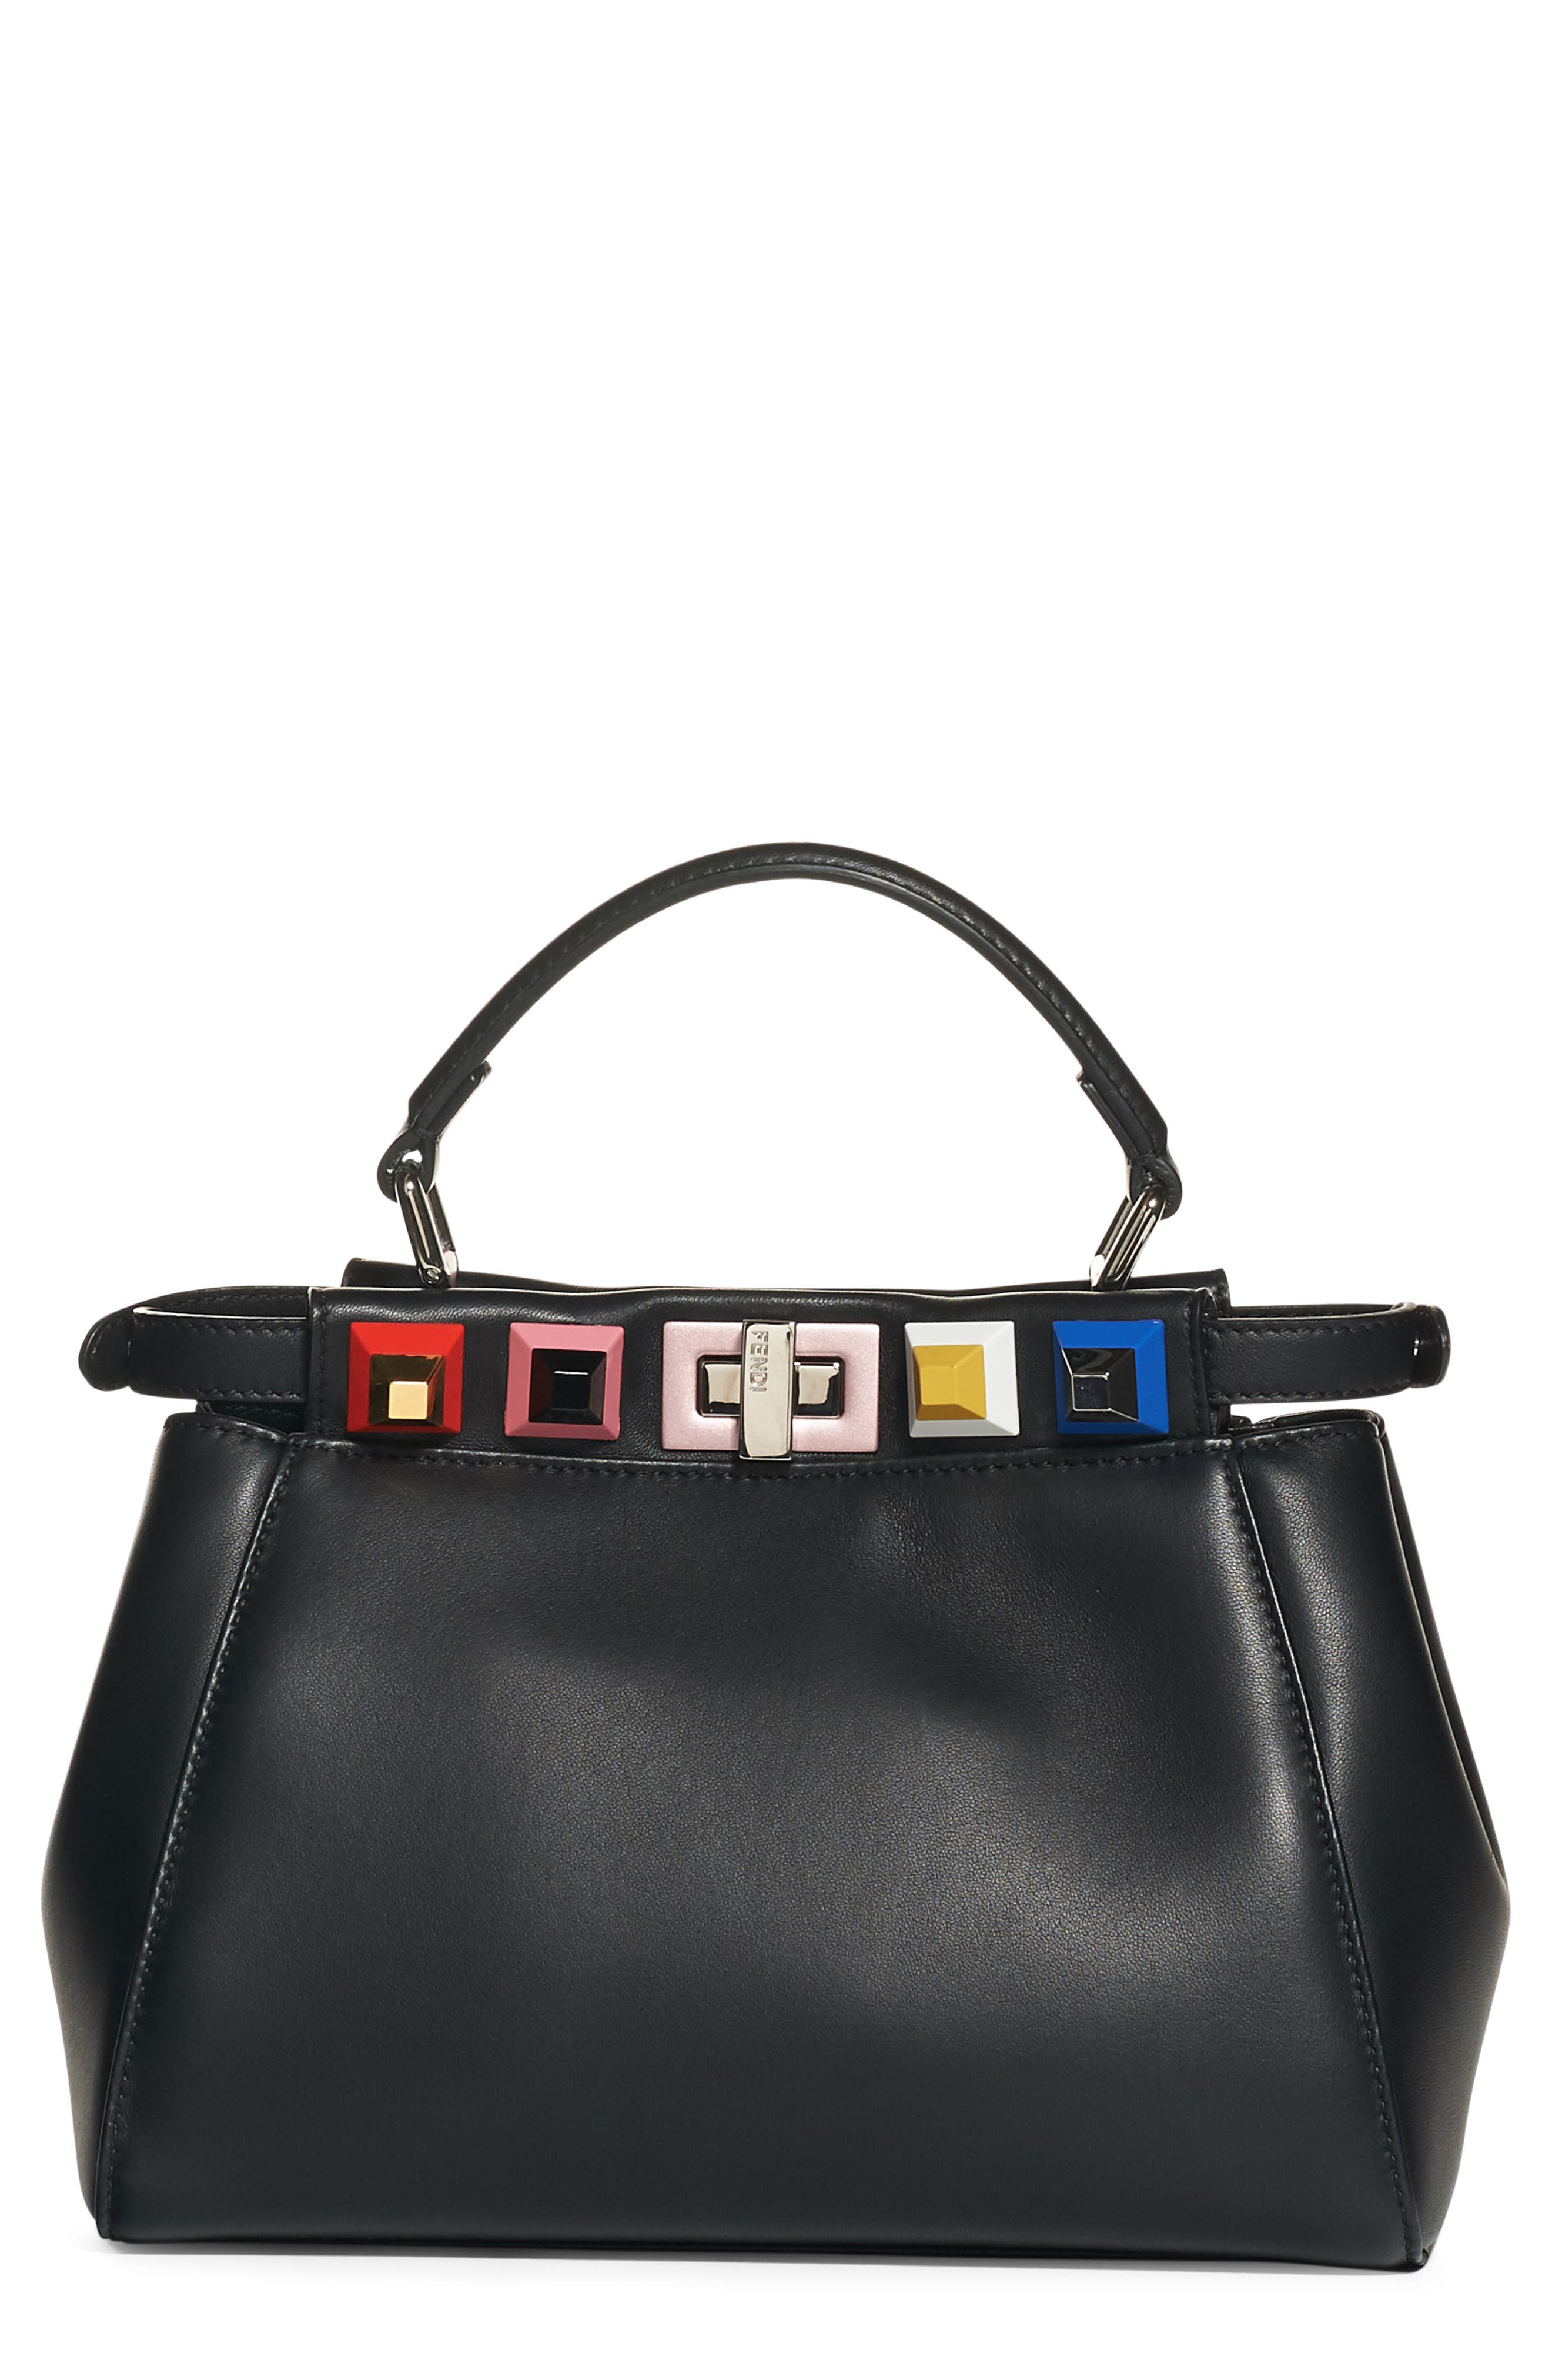 FENDI Mini Peekaboo Studded Leather Bag